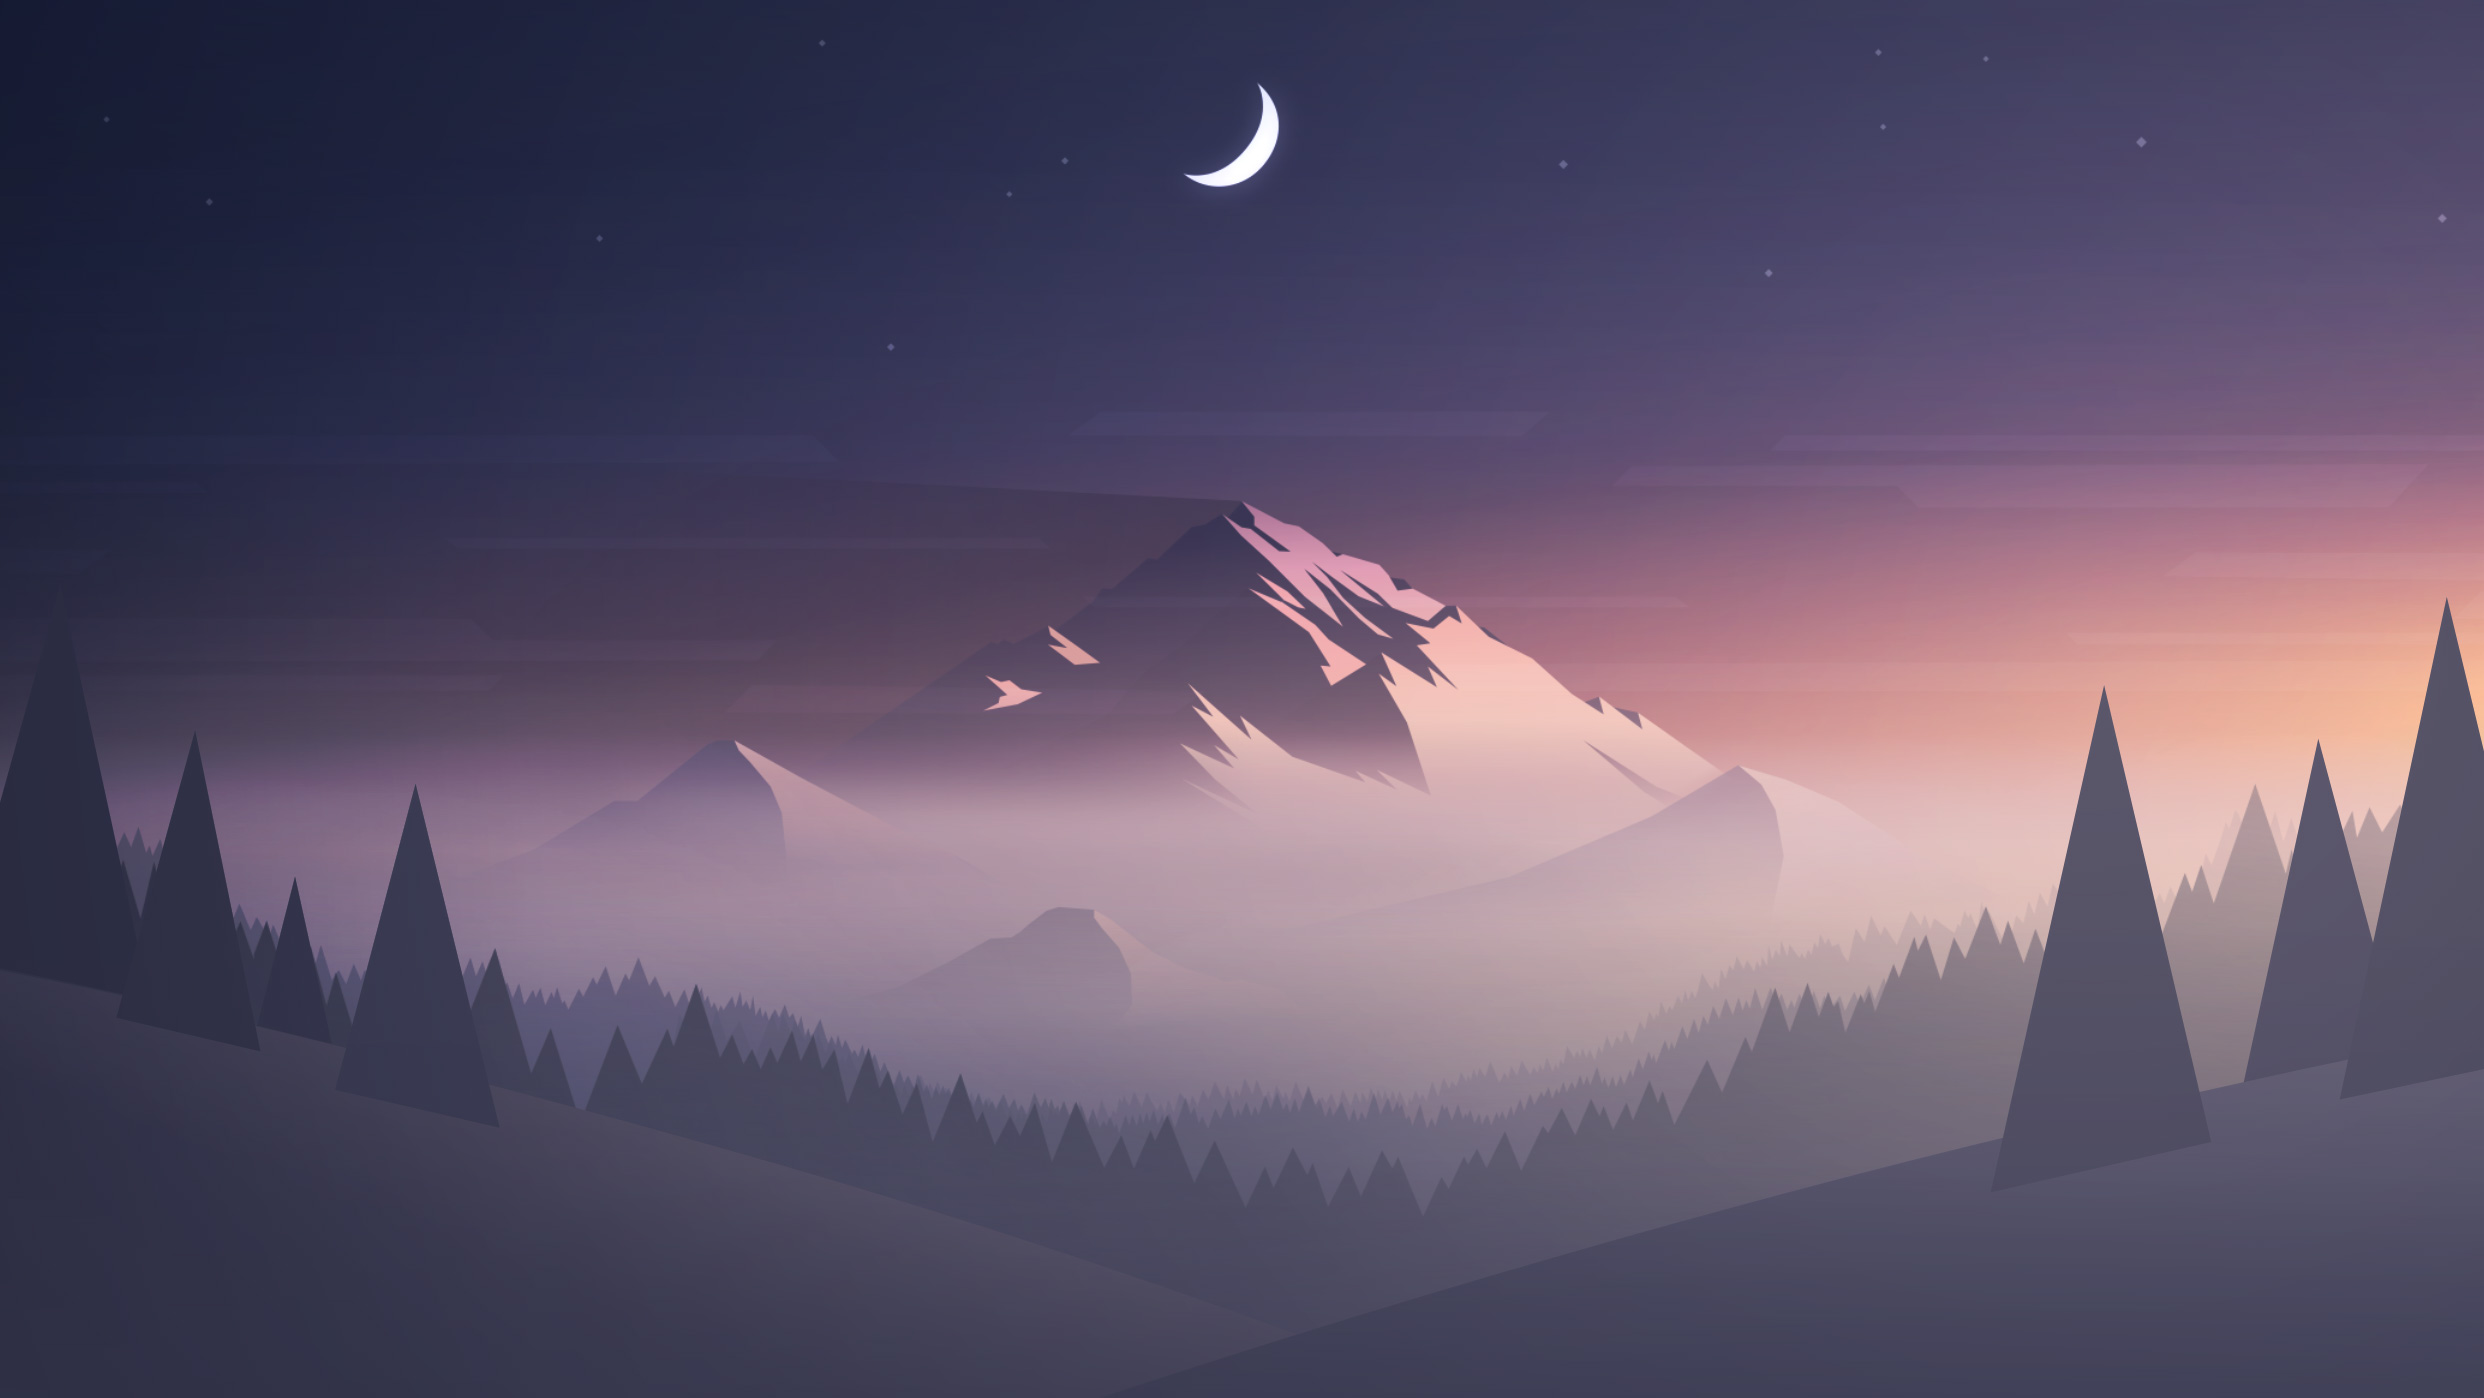 Mountains moon trees minimalism hd artist 4k wallpapers for Minimal art hd